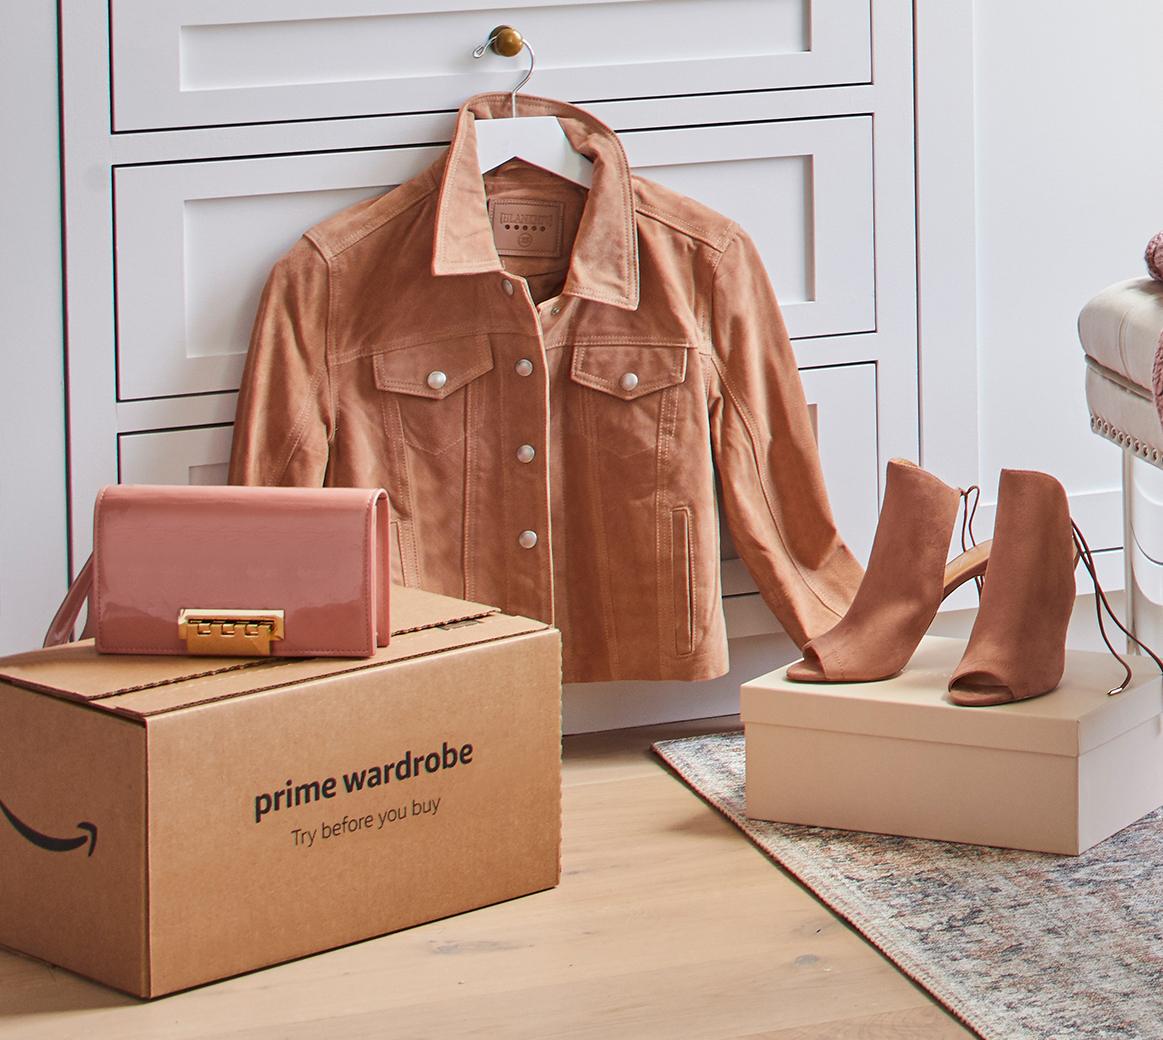 fbbb15e35 Fashion advice from Amazon? New personal styling service will tell you what to  wear — for a price